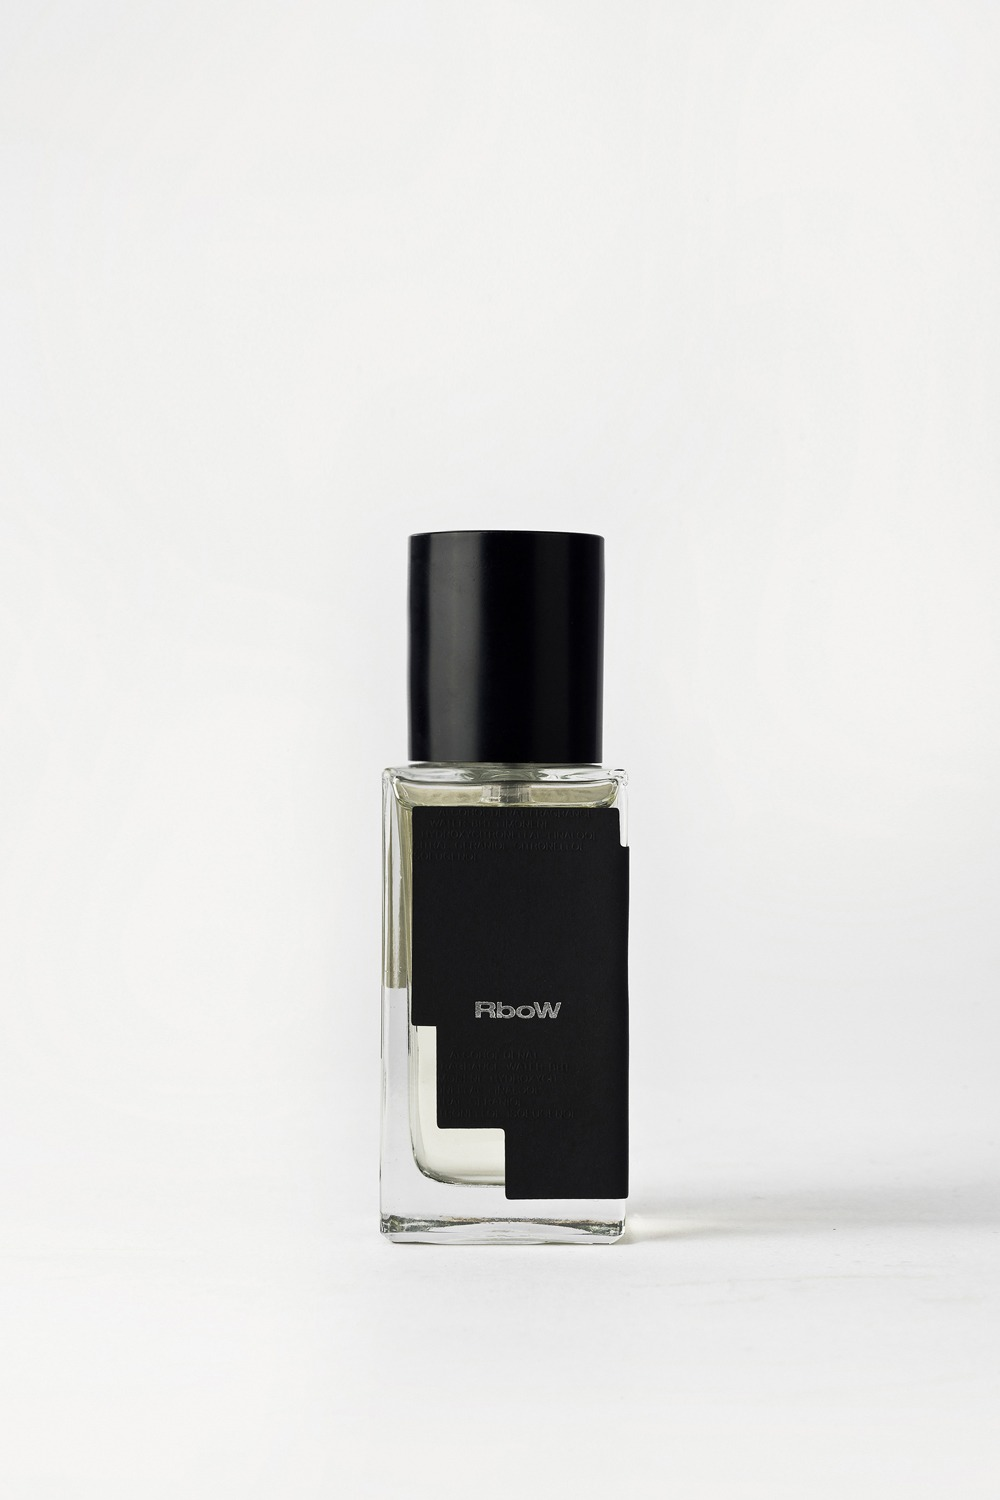 Case Study Eau de Perfume #8 Lights on objet